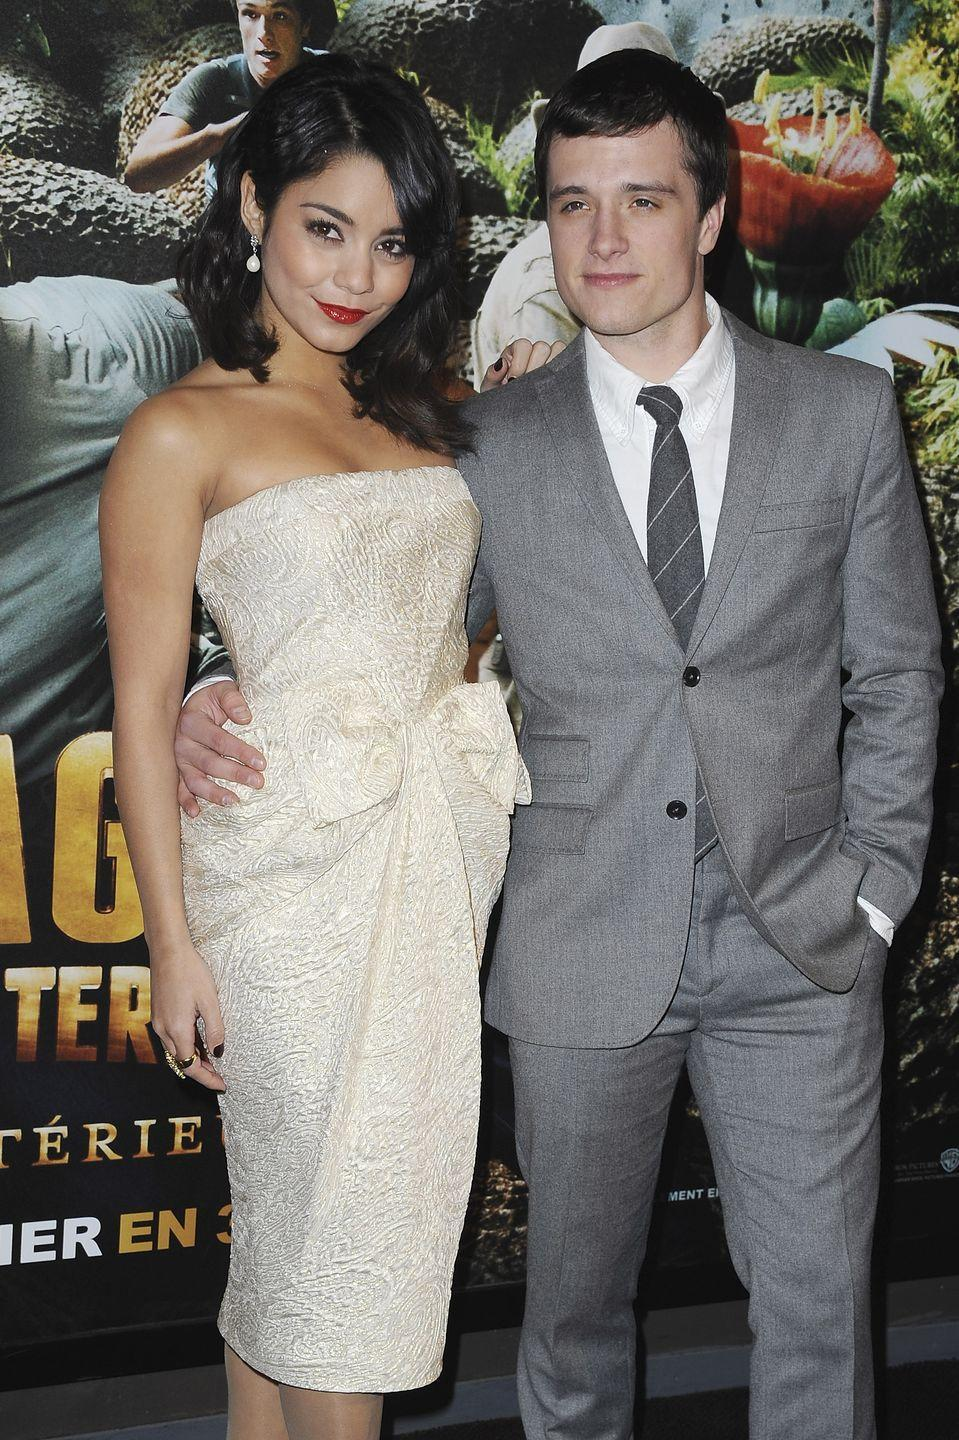 "<p>Vanessa Hudgens cozied up with Josh Hutcherson after filming <em>Journey 2: The Mysterious Island</em> but the short-lived romance quickly fizzled and the couple split in 2012. During a press tour for <em>Journey 2,</em> the pair <a href=""https://www.youtube.com/watch?v=I_zc4a0kGkA"" rel=""nofollow noopener"" target=""_blank"" data-ylk=""slk:sat down with Today"" class=""link rapid-noclick-resp"">sat down with <em>Today</em></a> and admitted that they did, in fact, date and remained ""really good friends.""</p>"